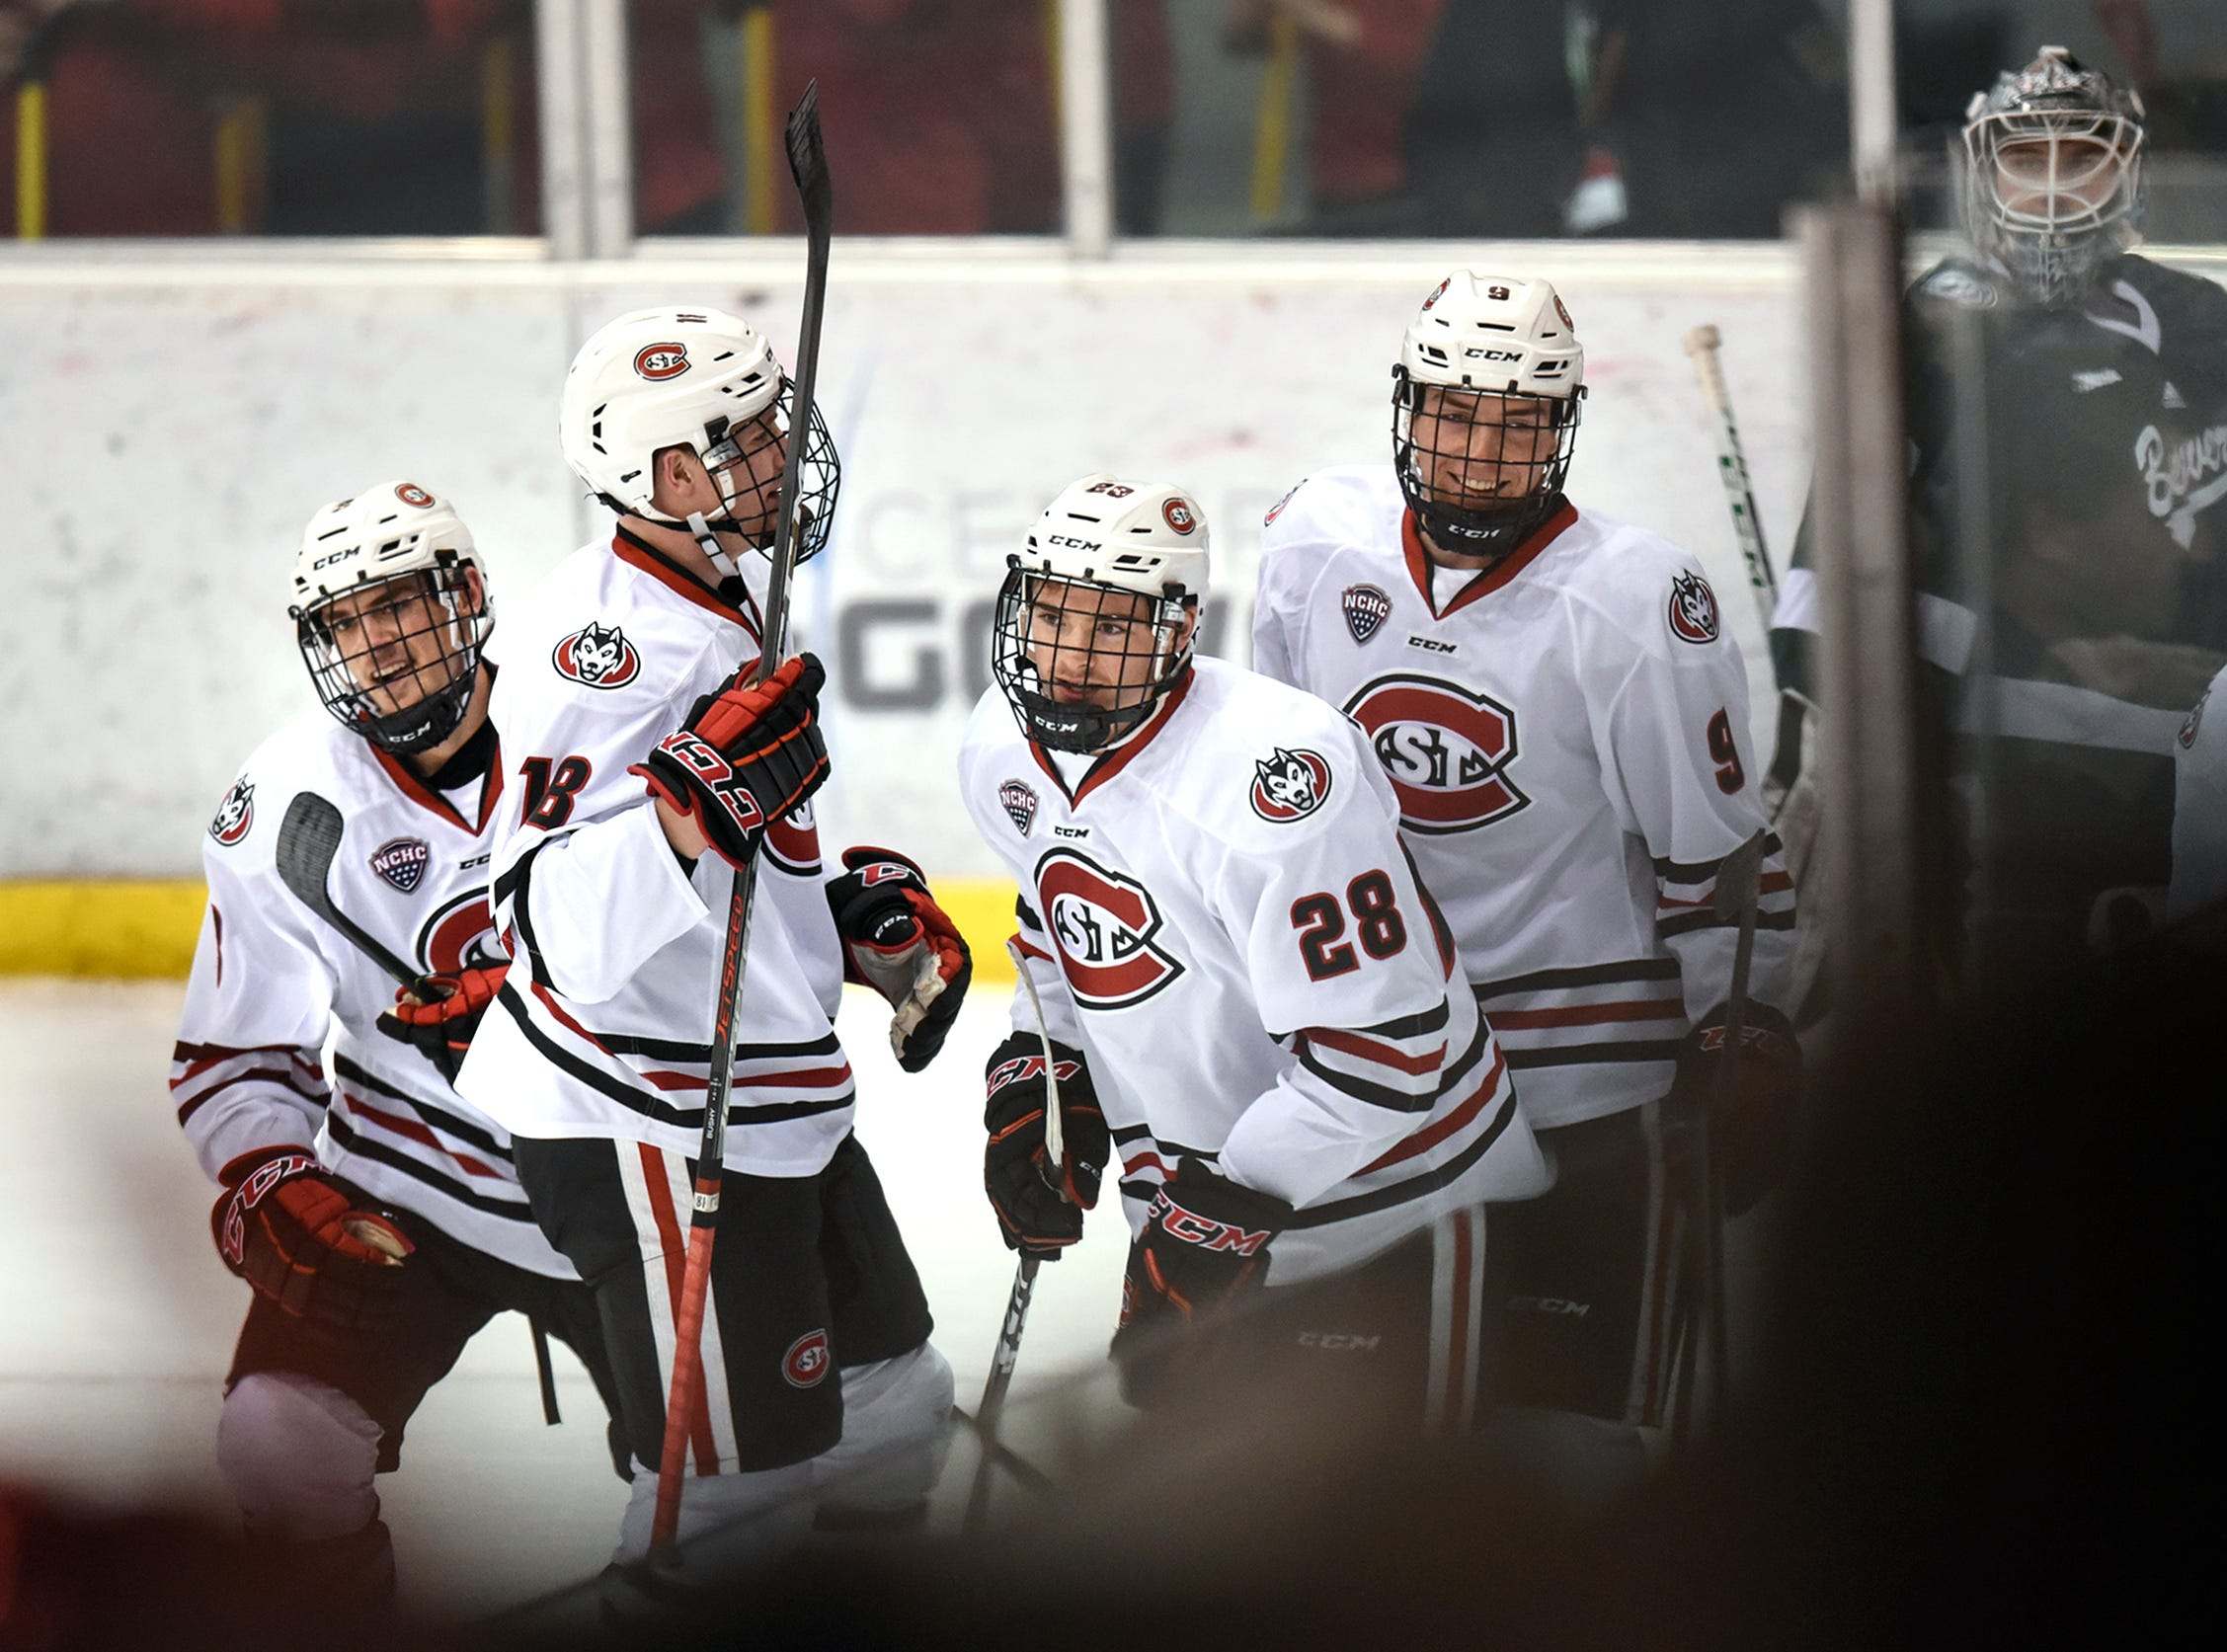 St. Cloud State players celebrate a goal by Kevin Fitzgerald during the first period of the Saturday, Nov. 17, game against Bemidji State at the Herb Brooks National Hockey Center in St. Cloud.